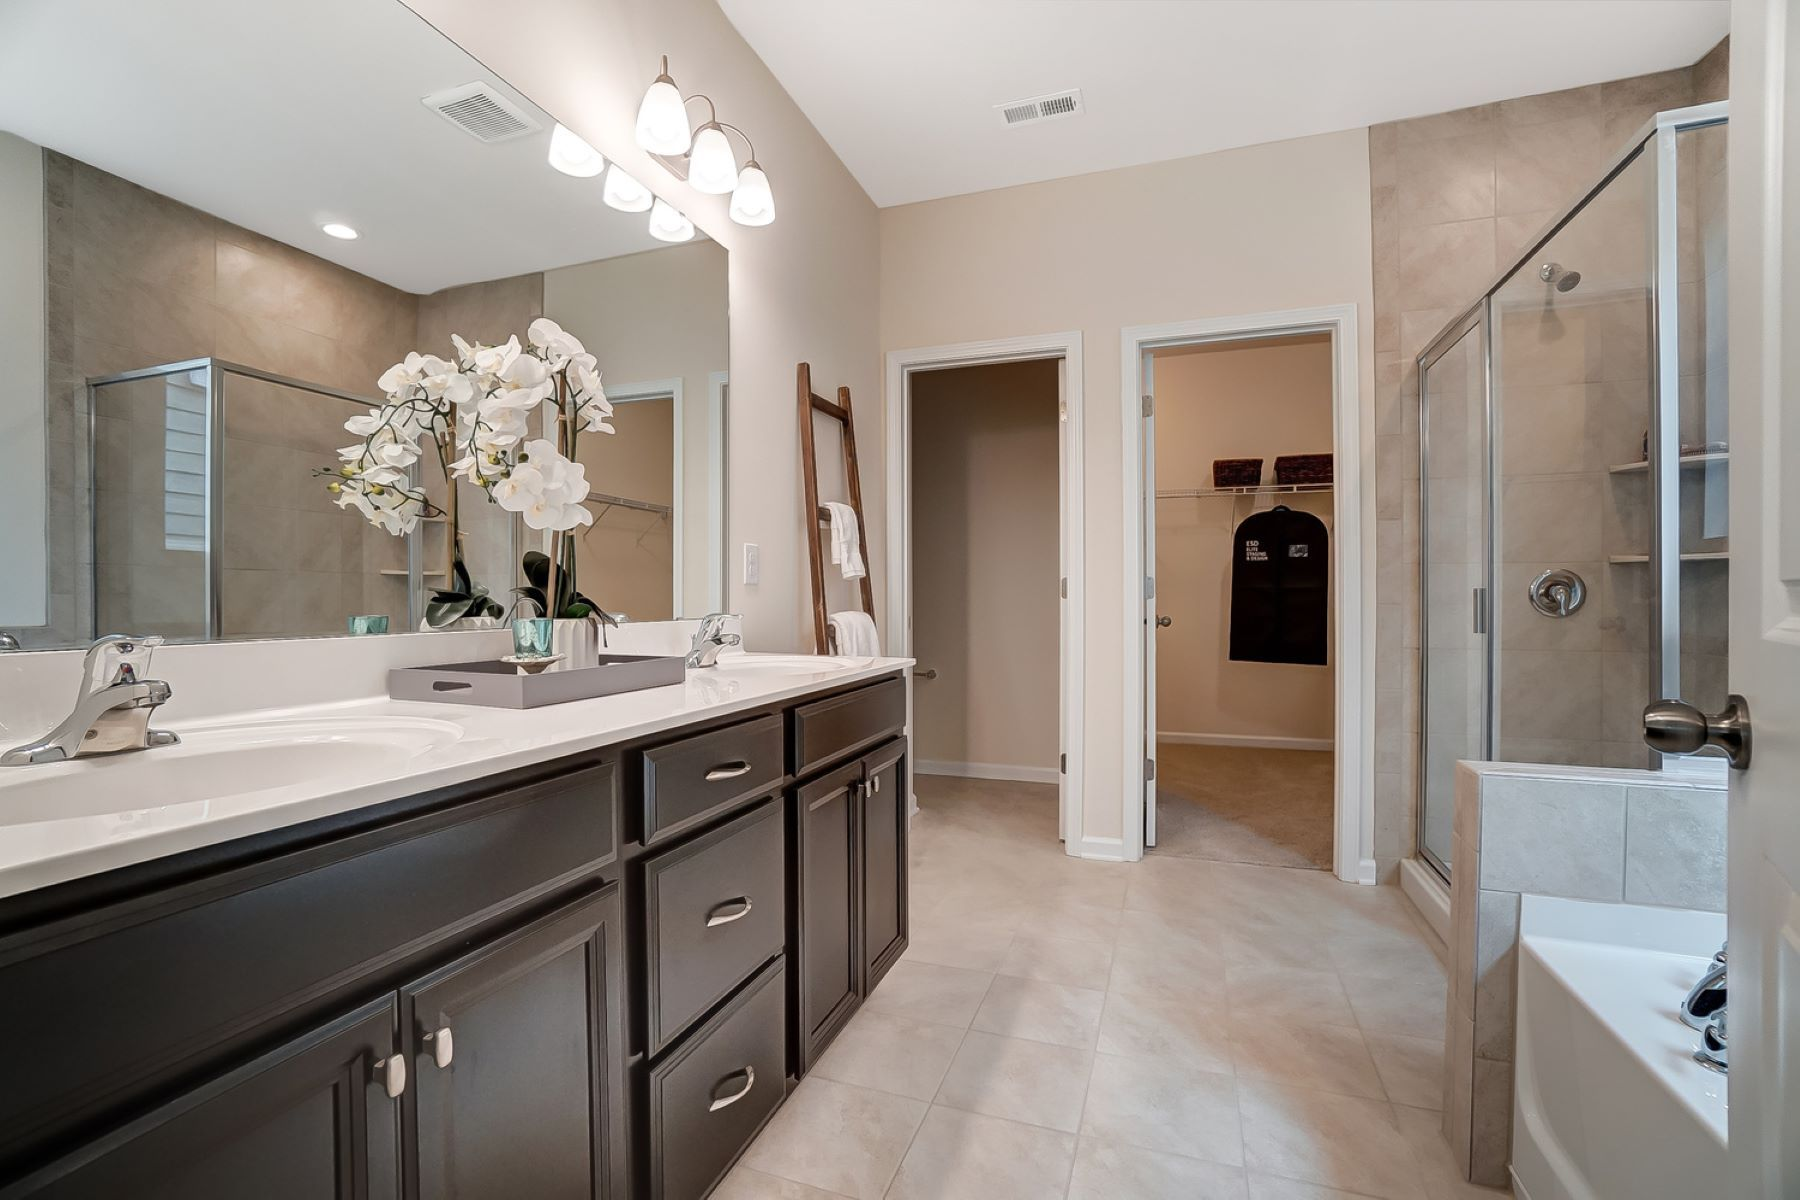 Bathroom featured in the Nolan By Mattamy Homes in Charlotte, NC